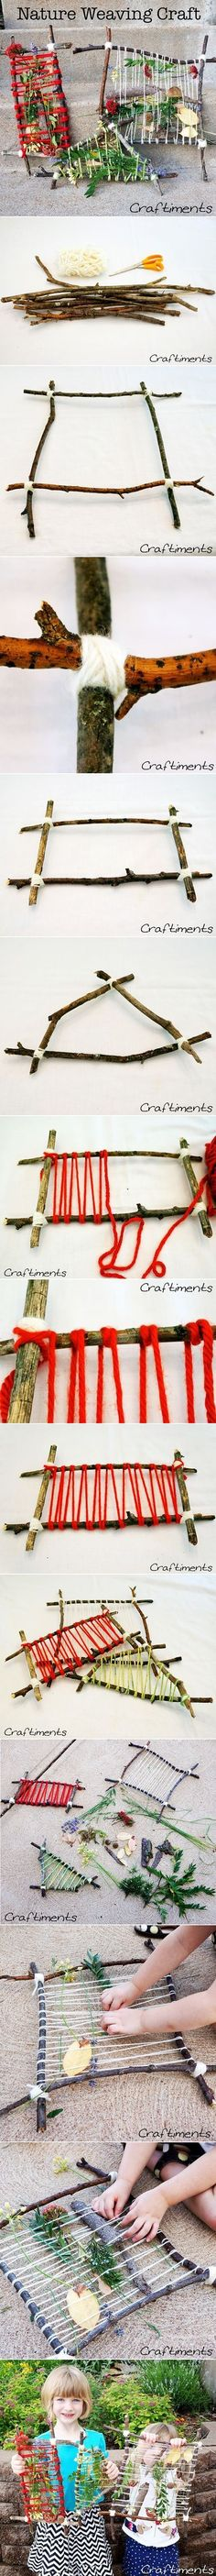 How to make DIY natural weaving loom, step by step tutorial / instructions Weben mit Naturmaterialien Projects For Kids, Diy For Kids, Crafts For Kids, Arts And Crafts, Theme Nature, Deco Nature, Best Summer Camps, Summer Fun, Weaving Projects